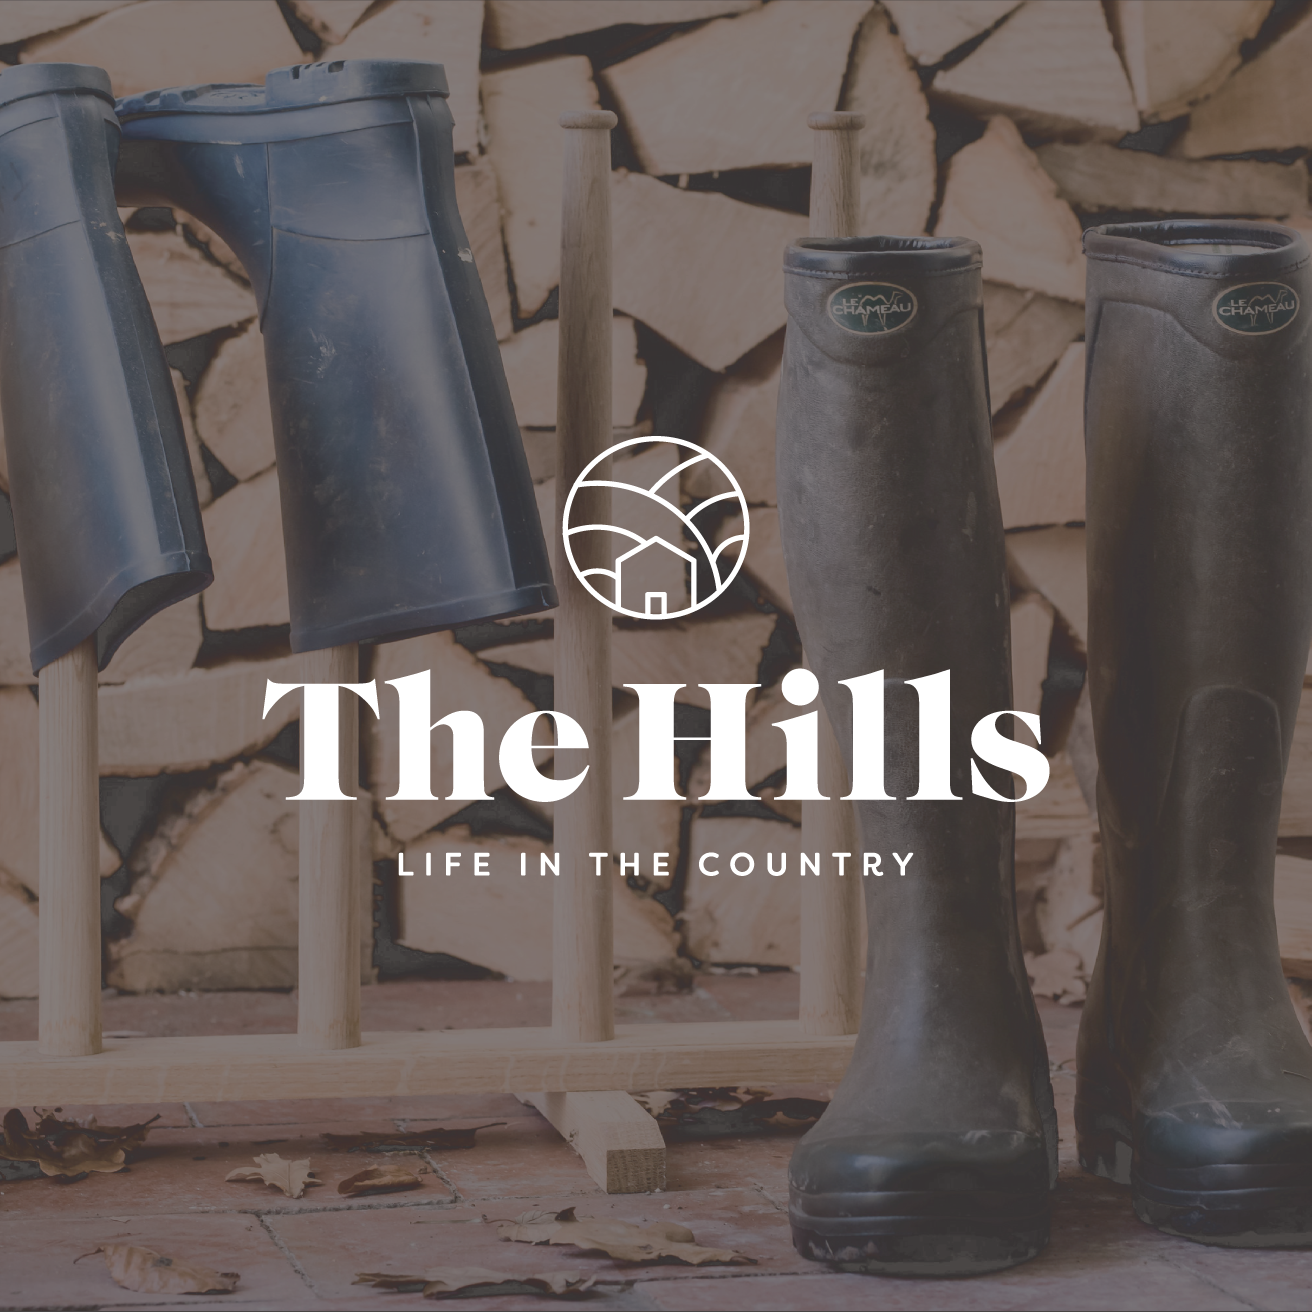 The Hills - Countryside Magazine - Comprehensive content creation and marketing support drives traffic to a new blog and digital magazine.